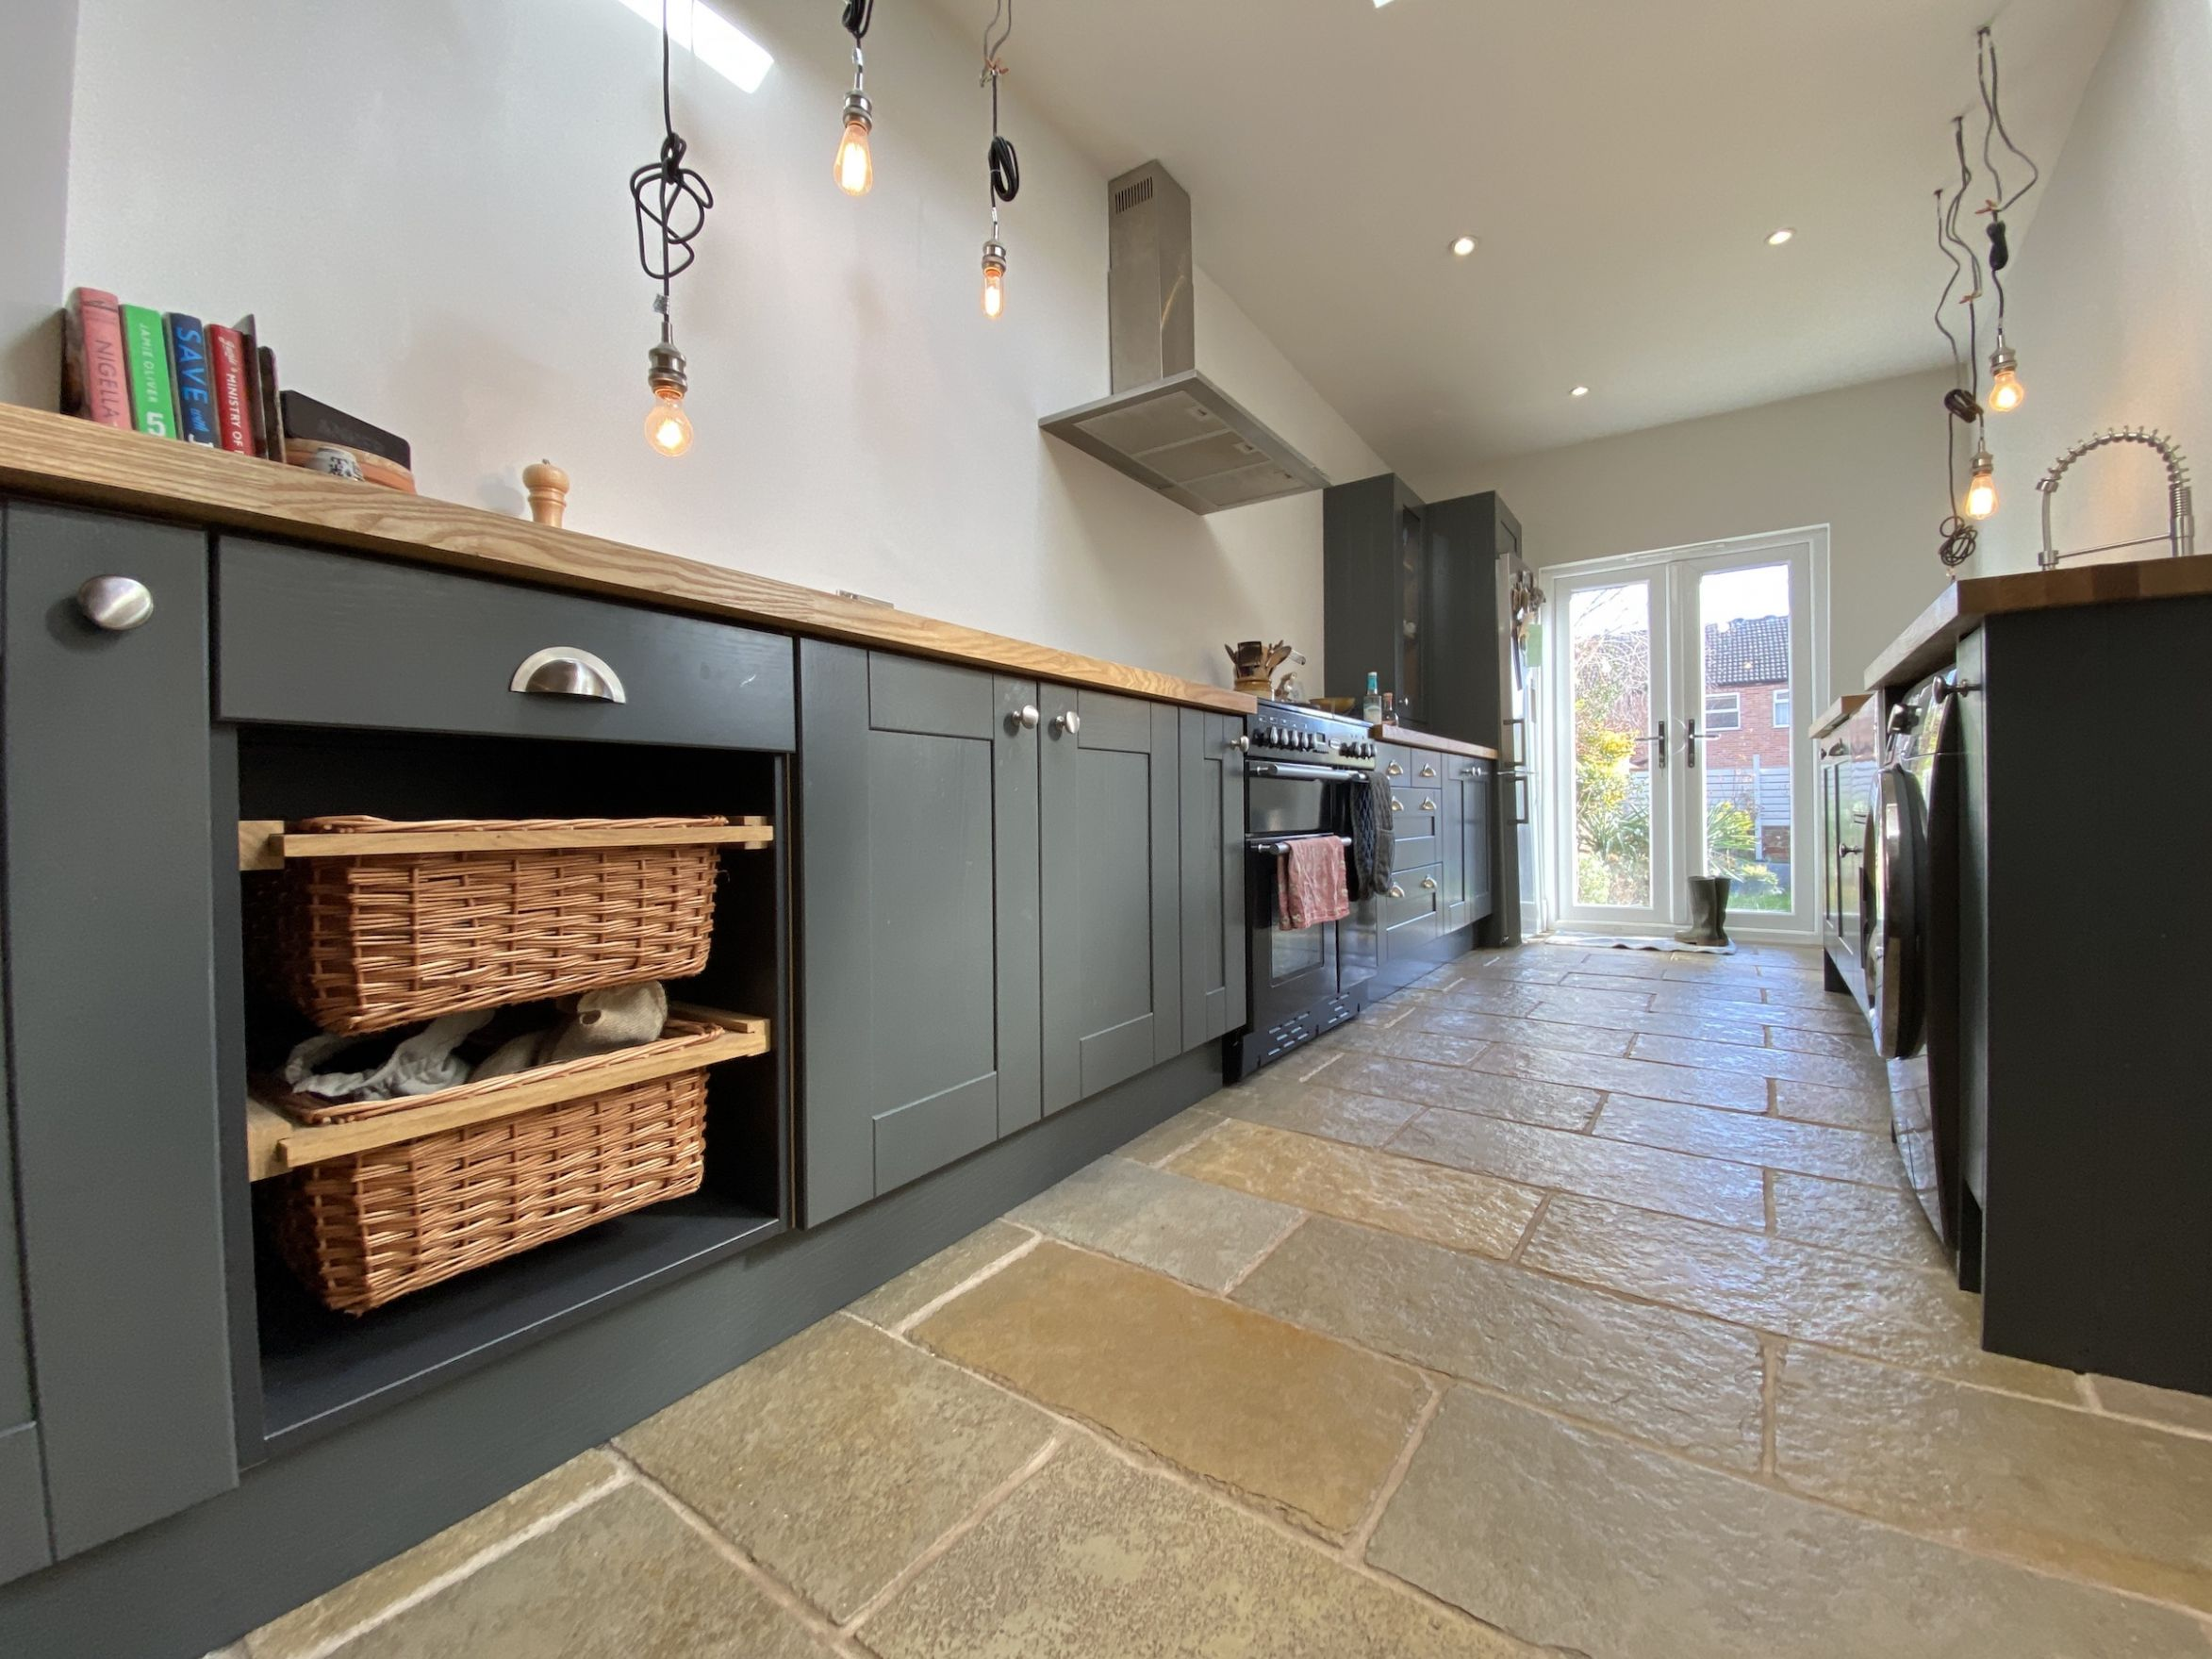 DIY Kitchens Review: Would We Recommend? - Kezzabeth   DIY ..